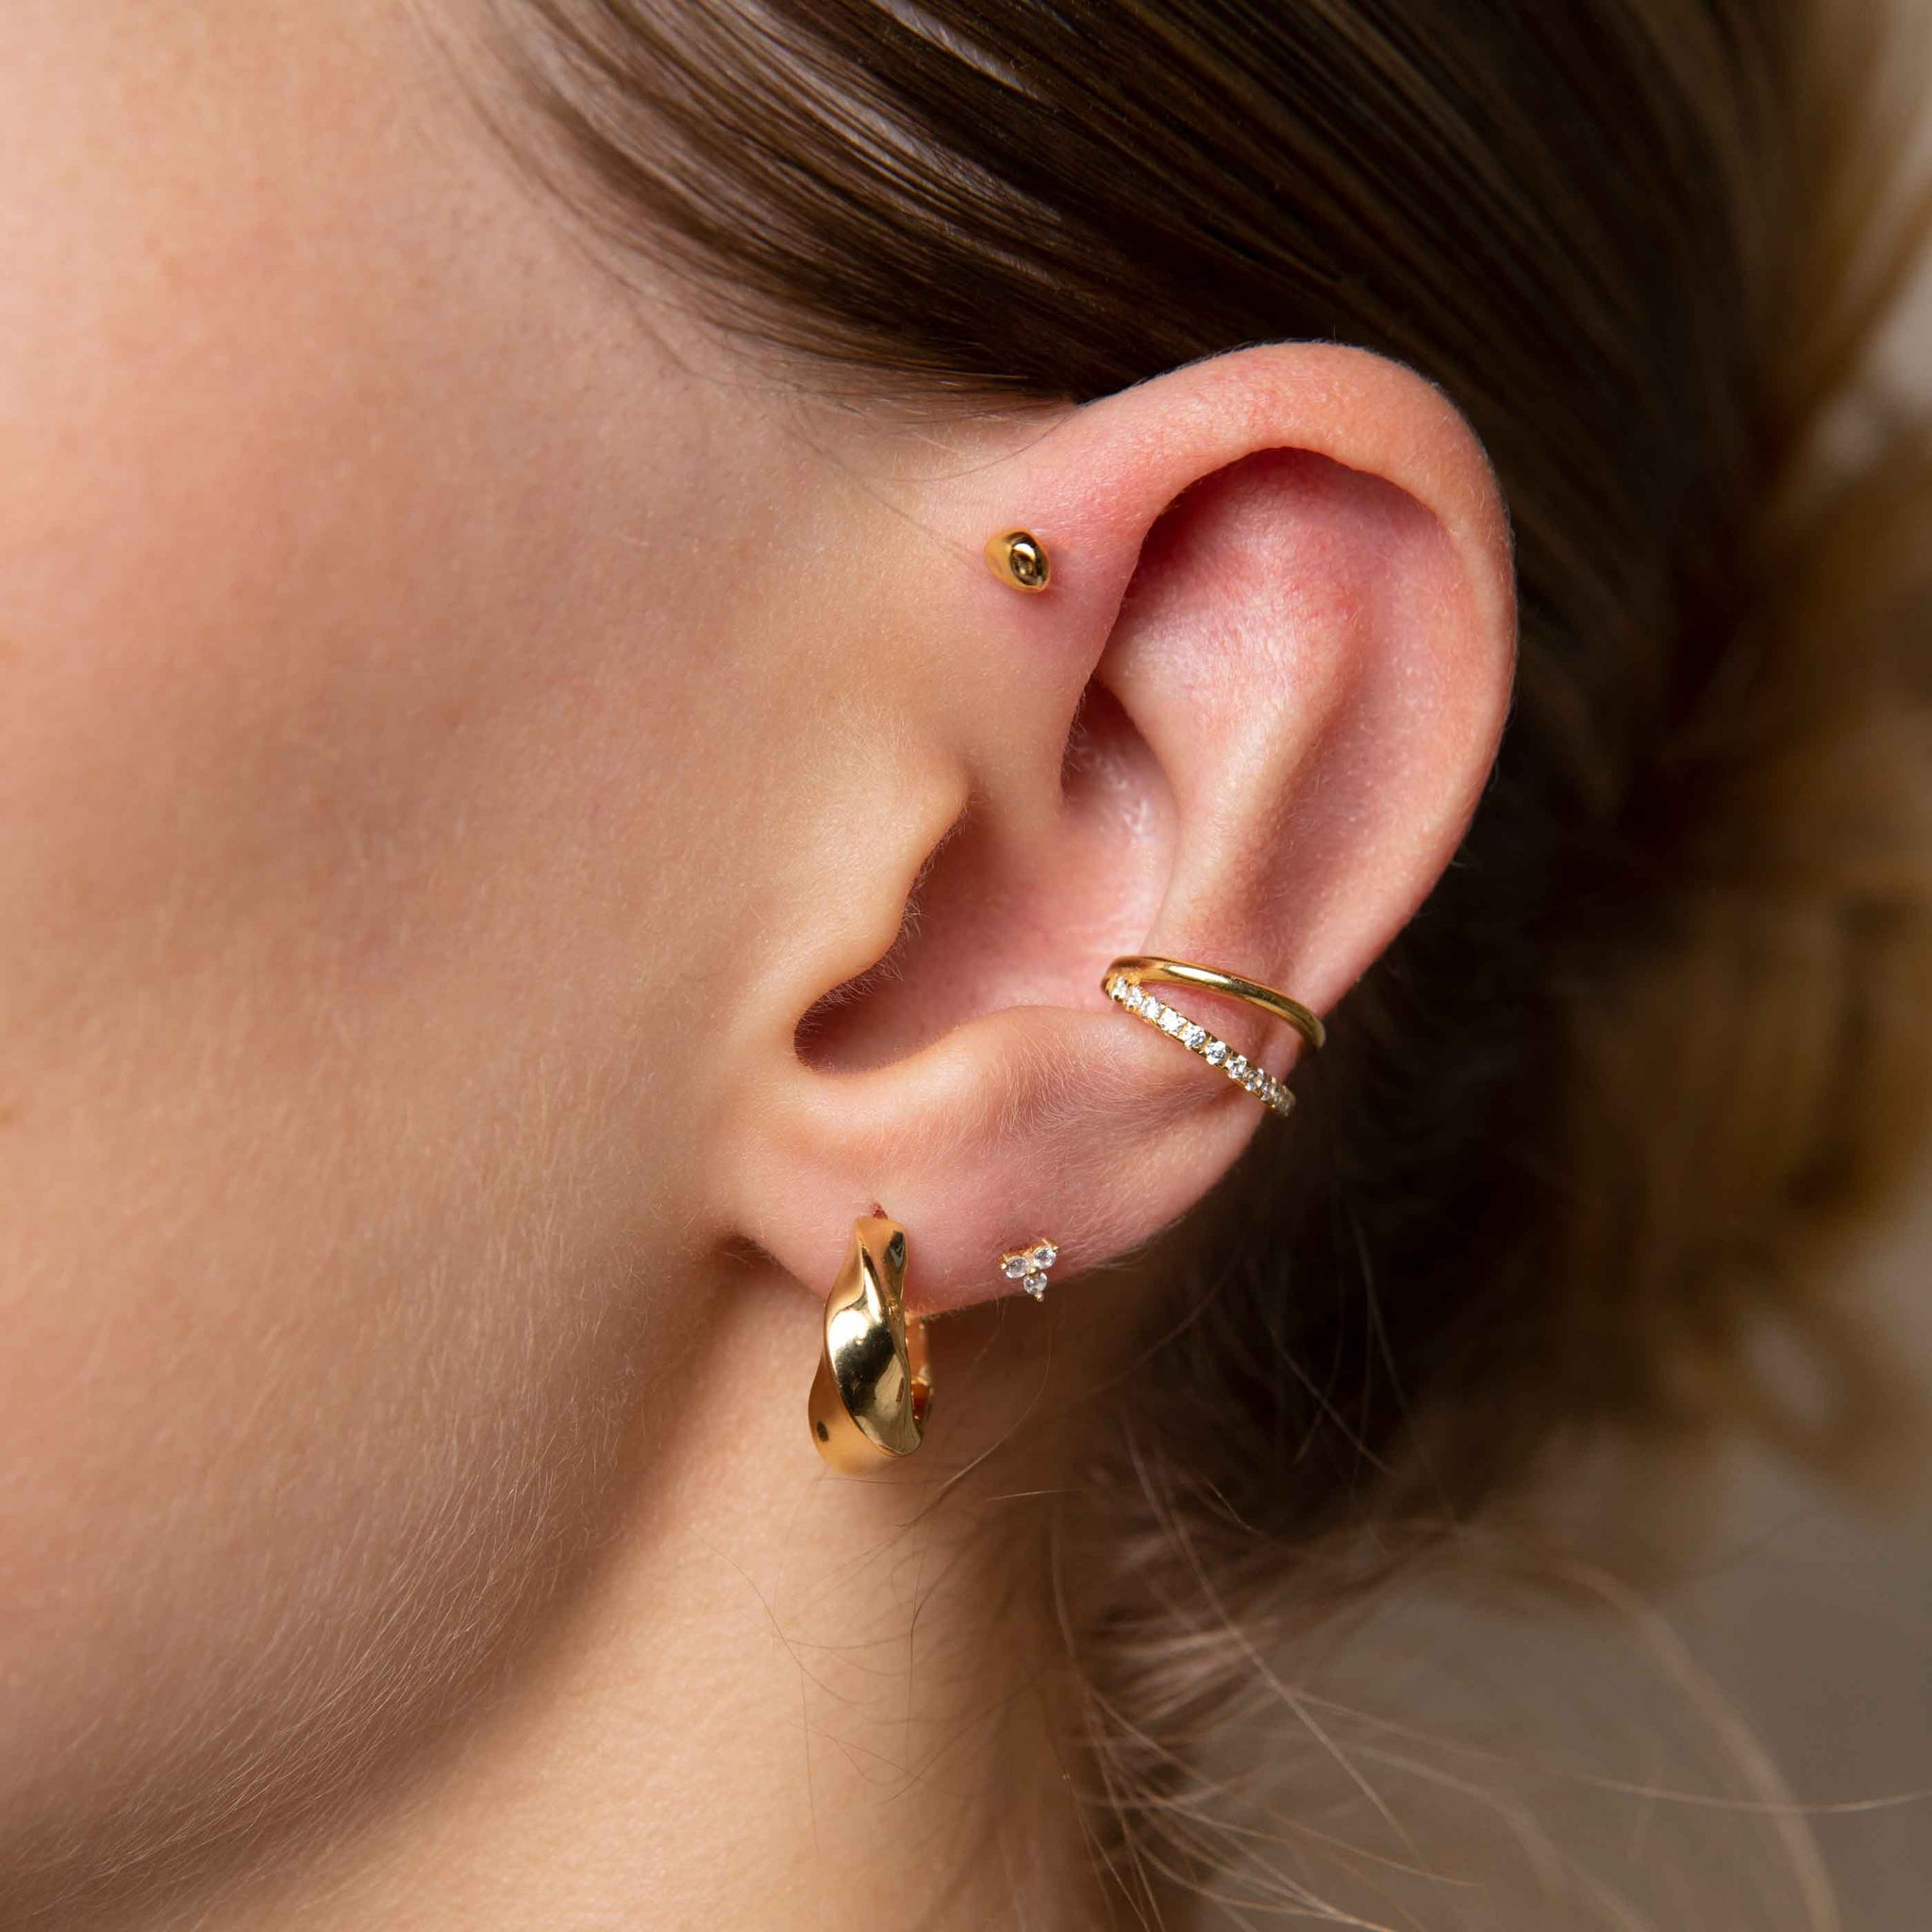 Triple Crystal Stud Earrings in Gold worn with elemental hoops